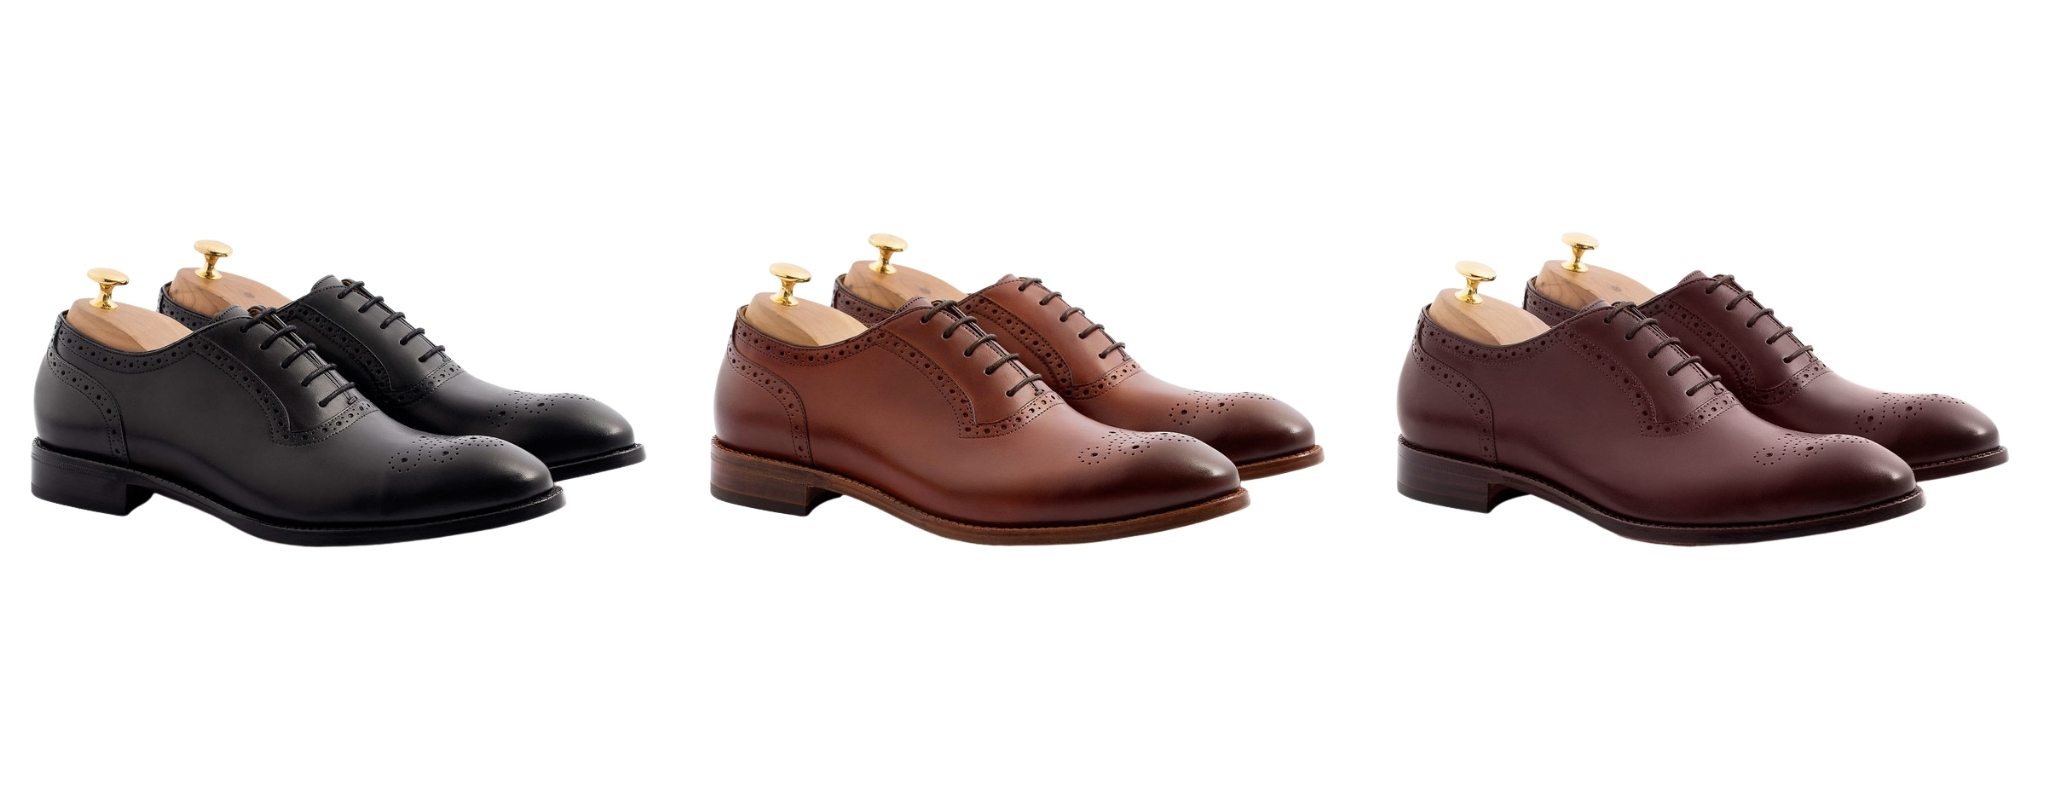 black, brown and burgundy dress shoes